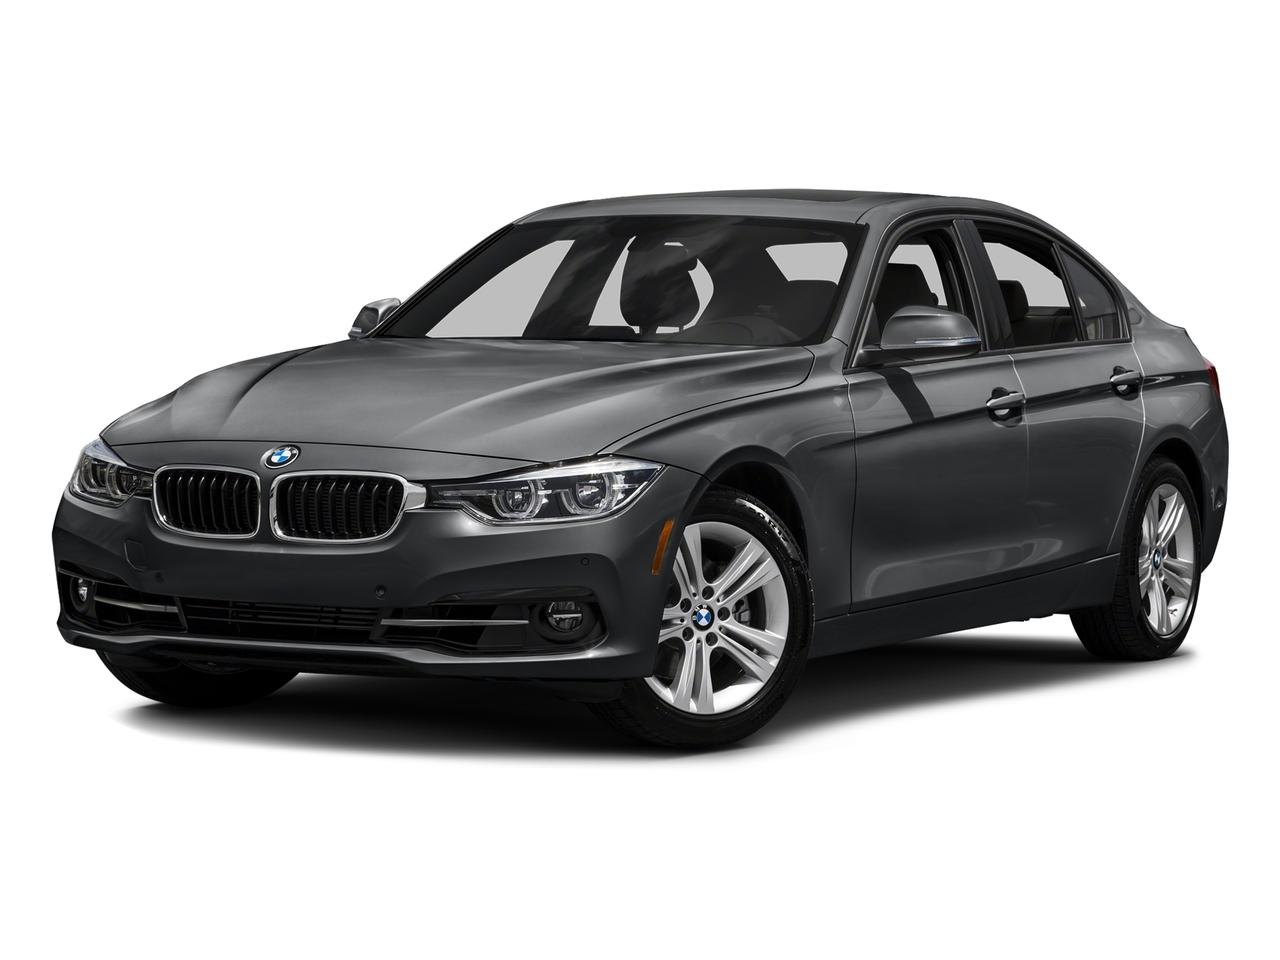 2017 BMW 330i Vehicle Photo in Tulsa, OK 74133